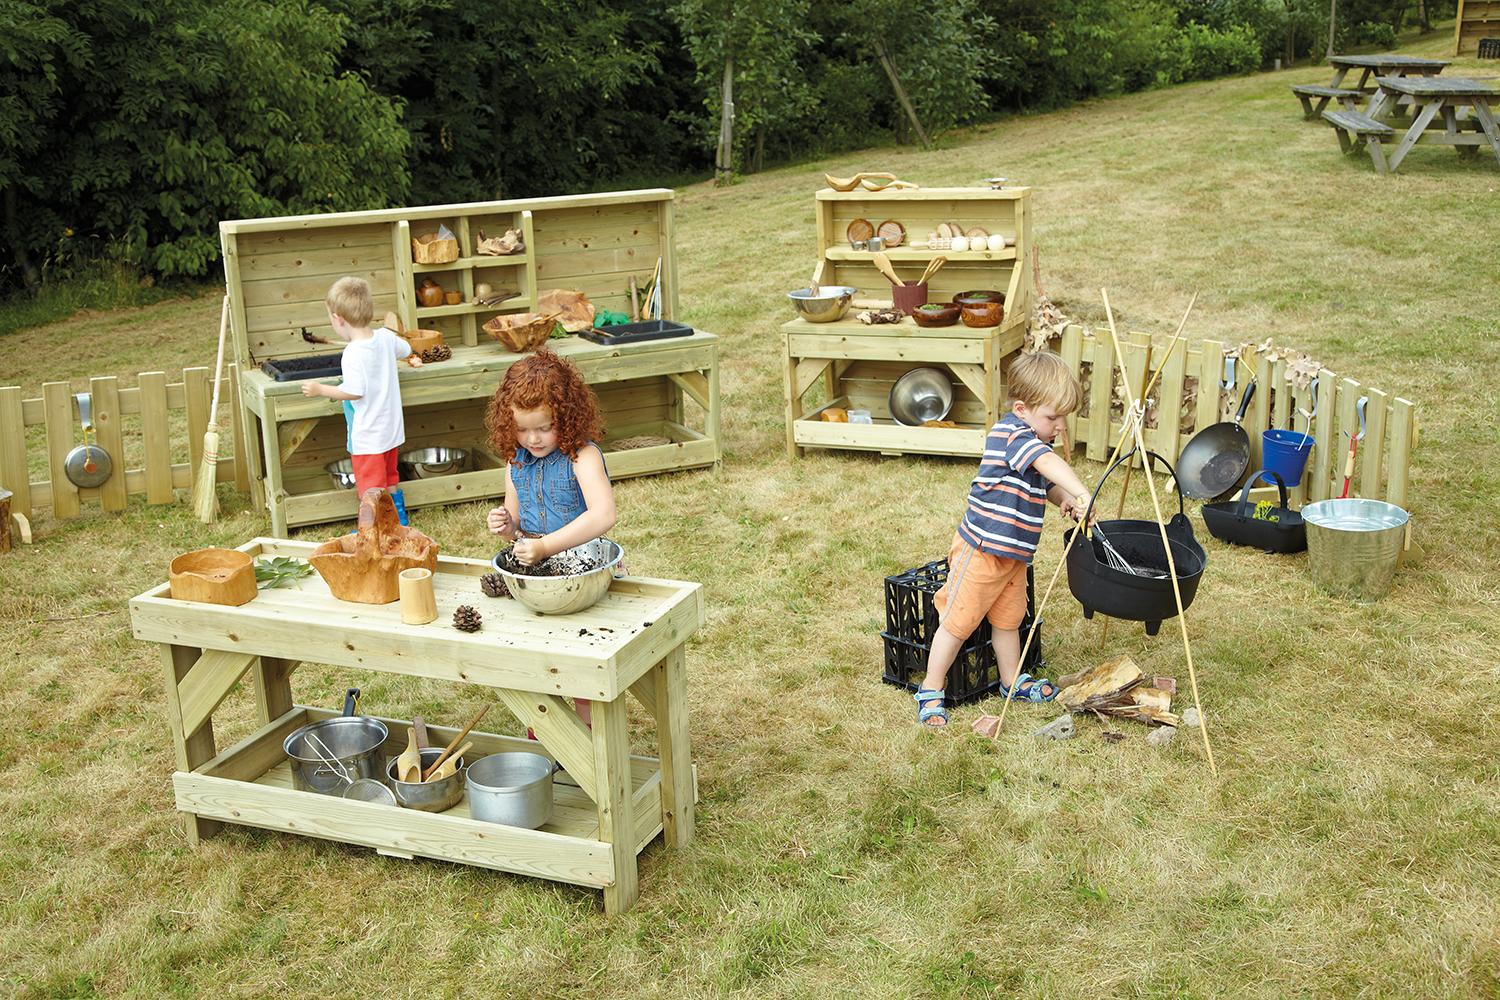 How to do primary outdoor play well by Alistair Bryce-Clegg